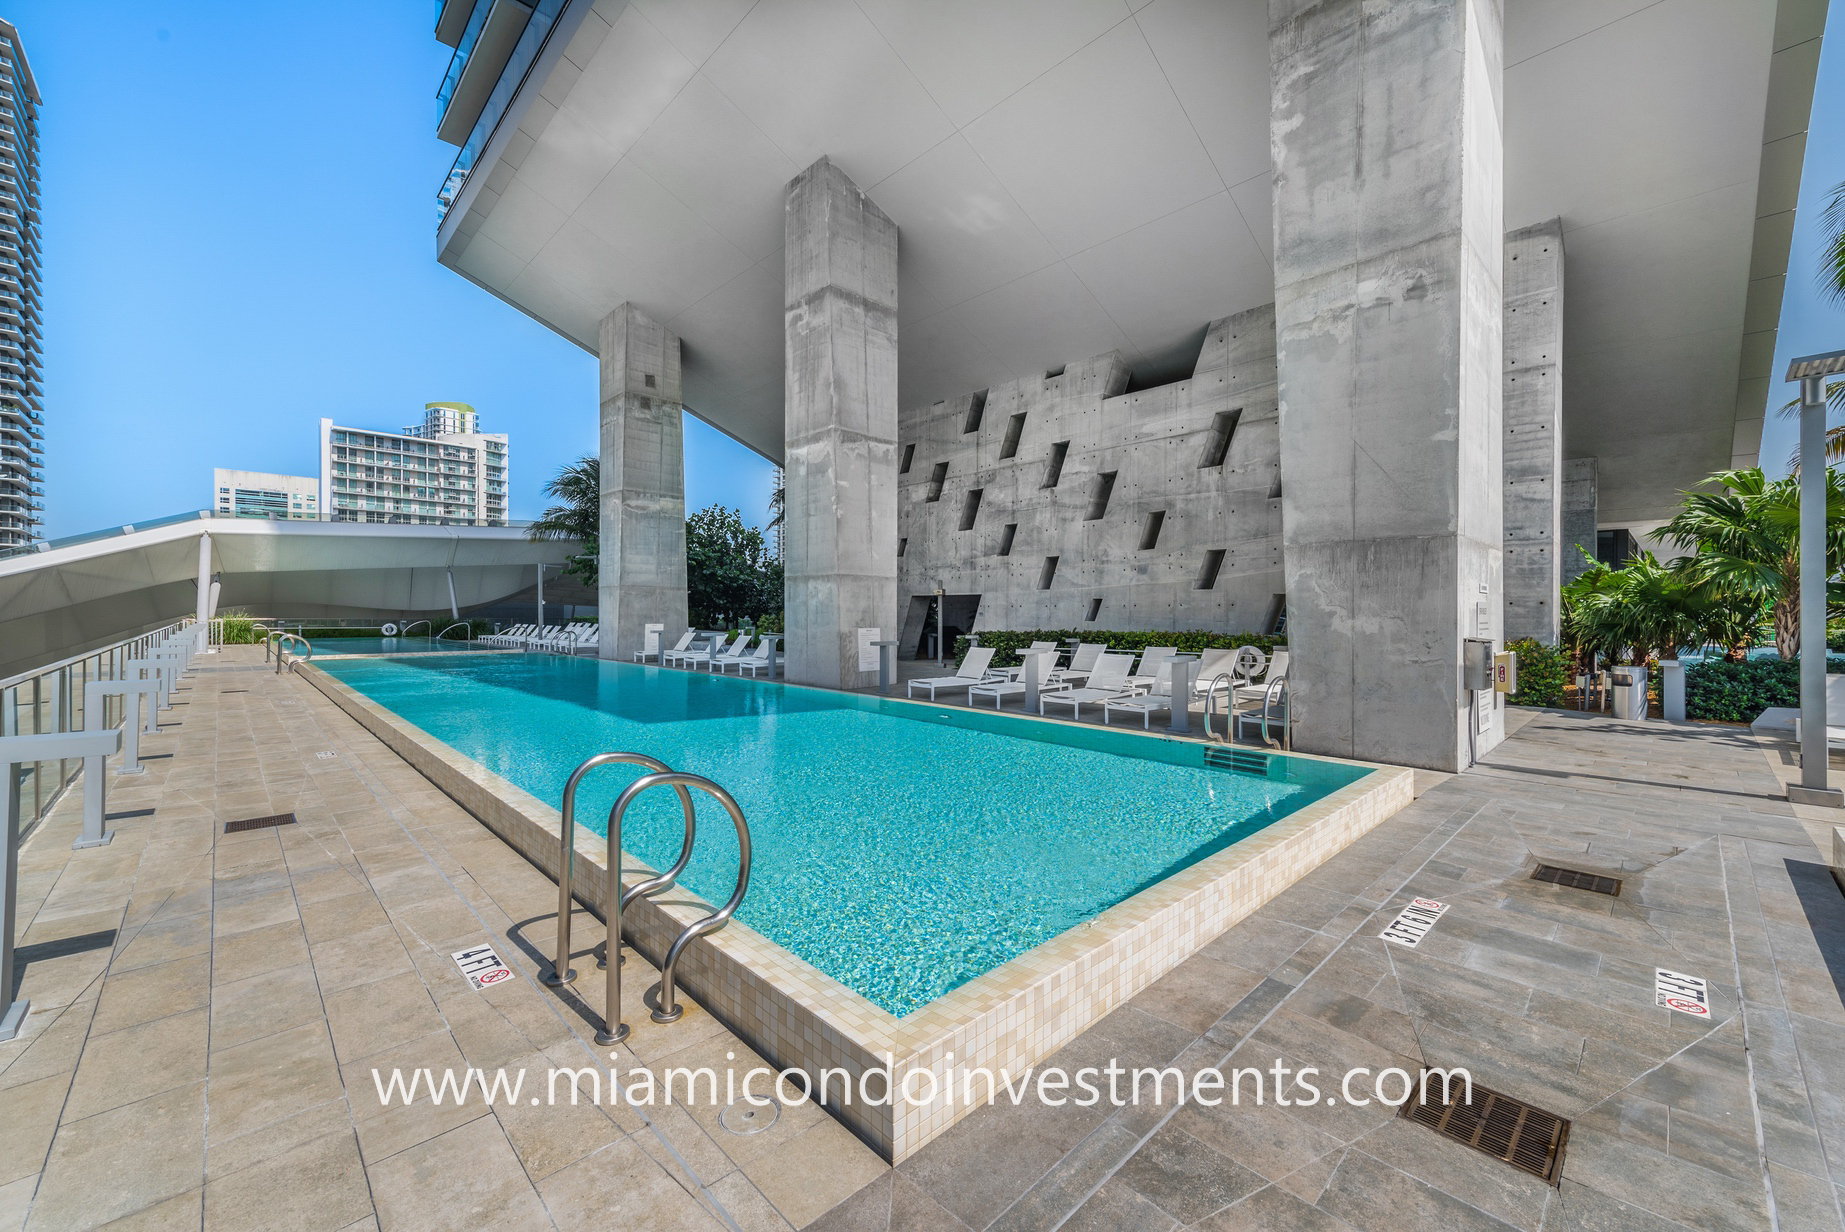 swimming pool at Reach Brickell City Centre